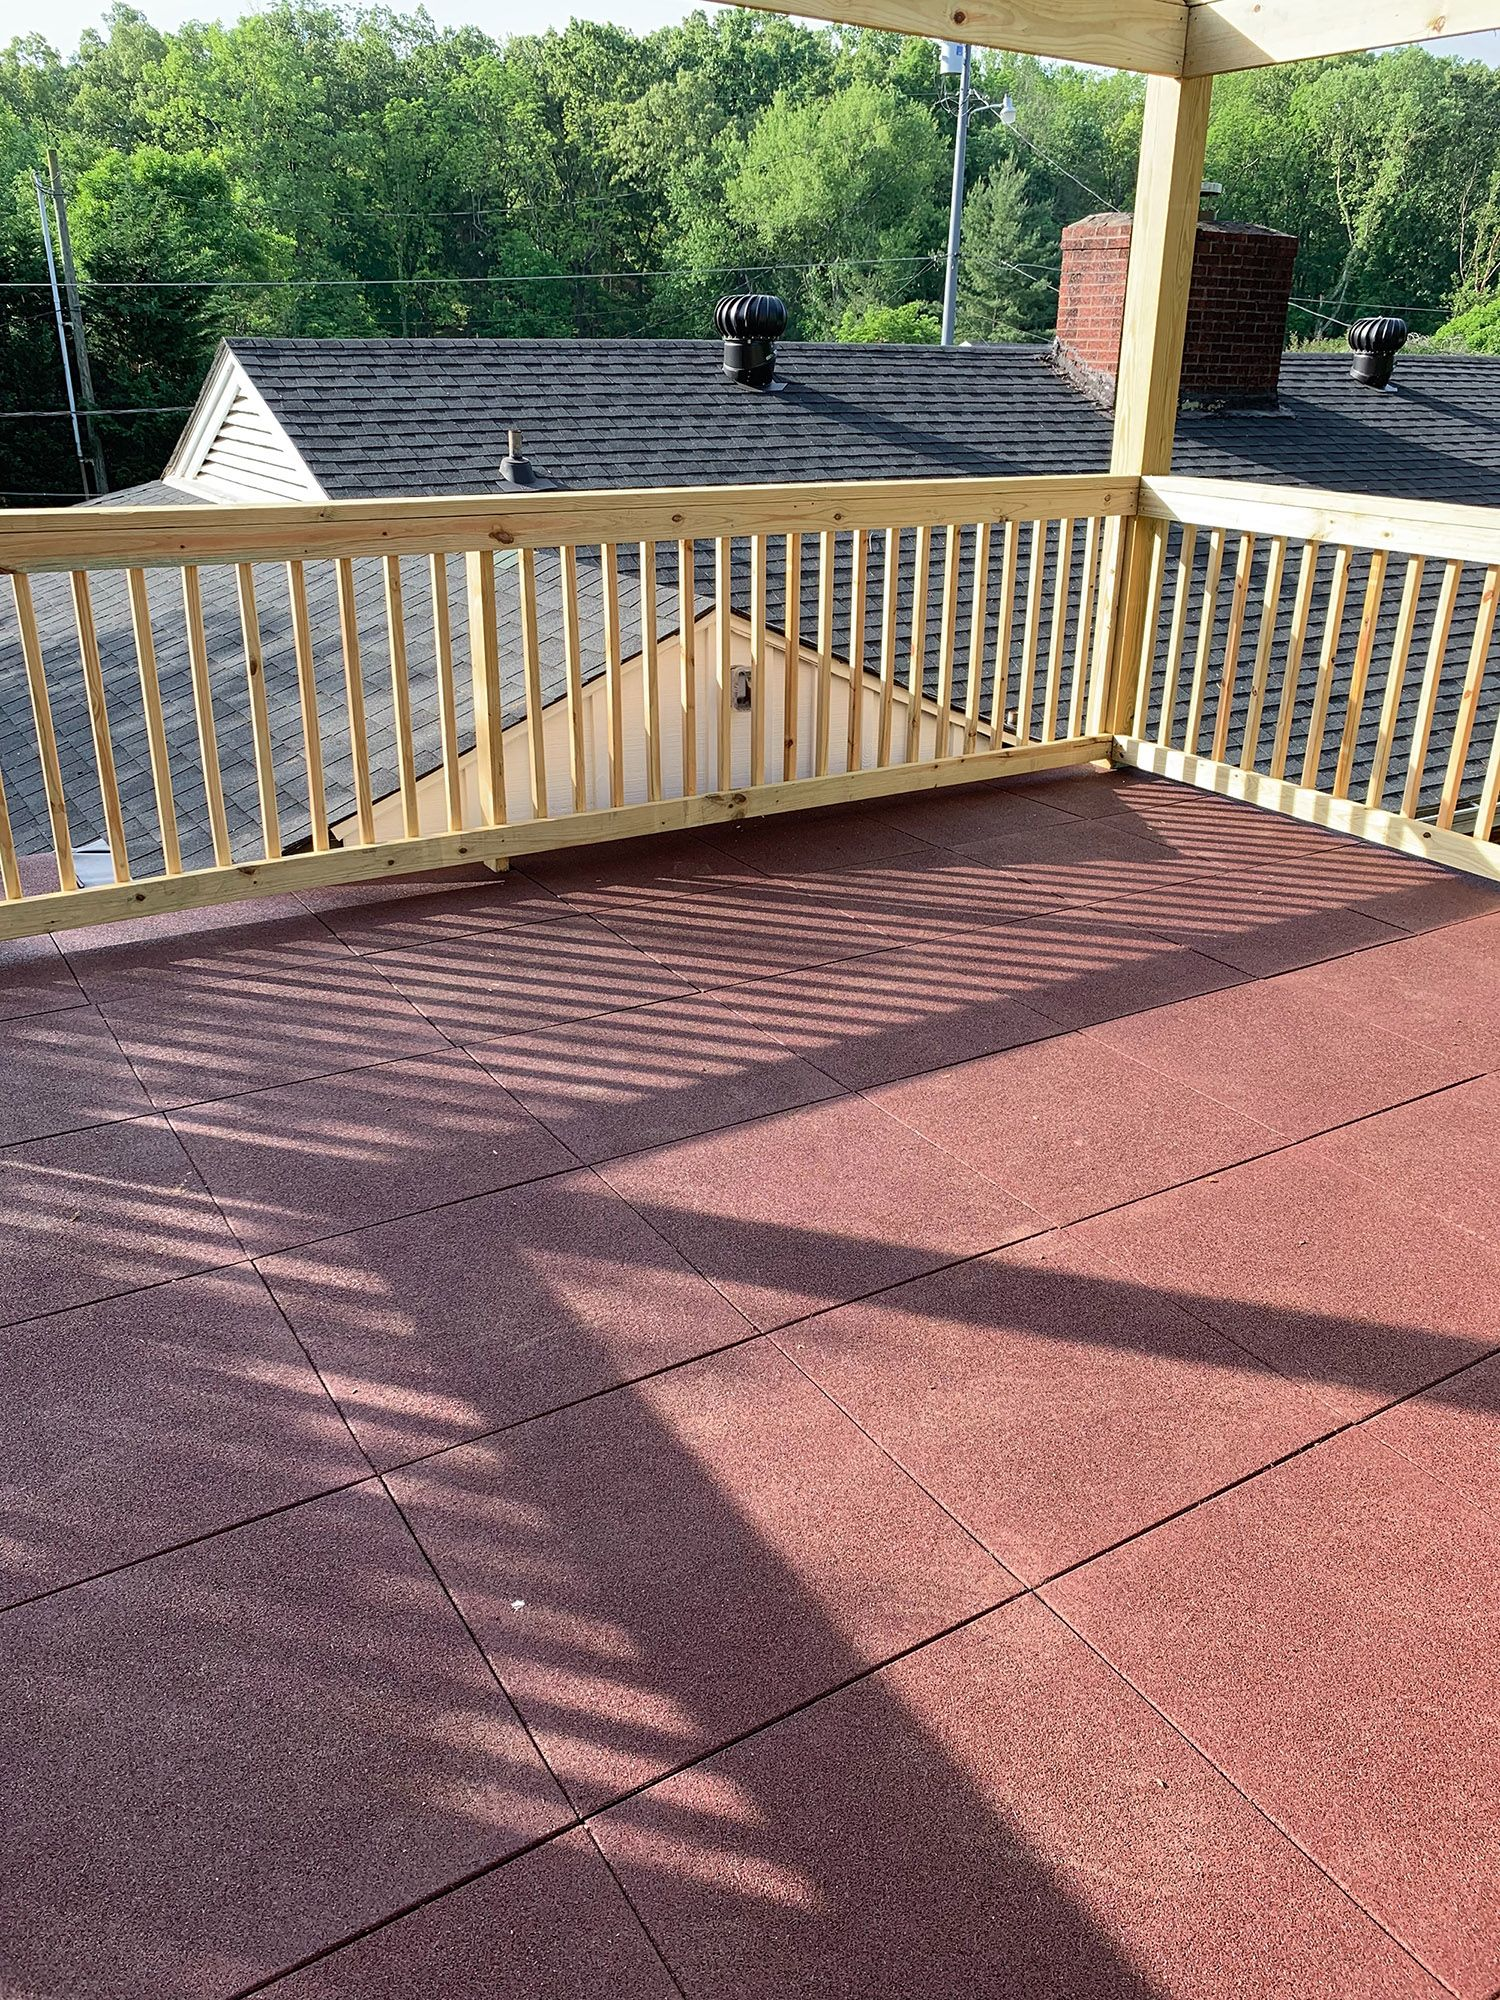 Deck Skirt Board Ideas Can Be An Attractive Feature That Can Be Added To Any Low Level Deck You Can Use Boards To Const Deck Skirting Diy Deck Building A Deck